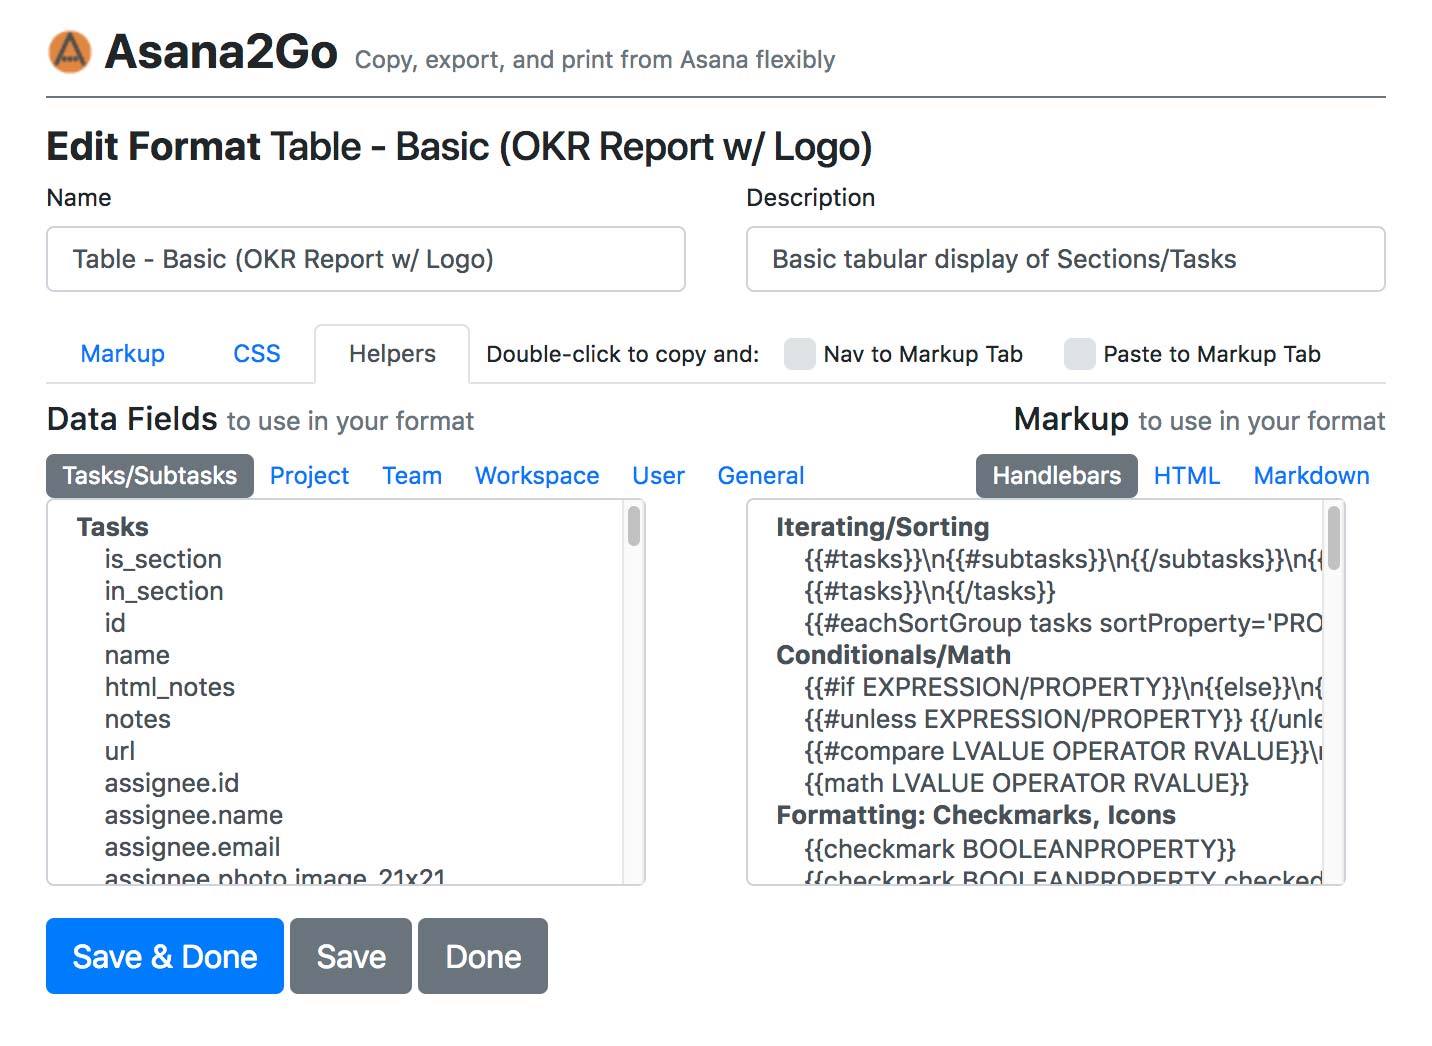 Asana2Go Interface